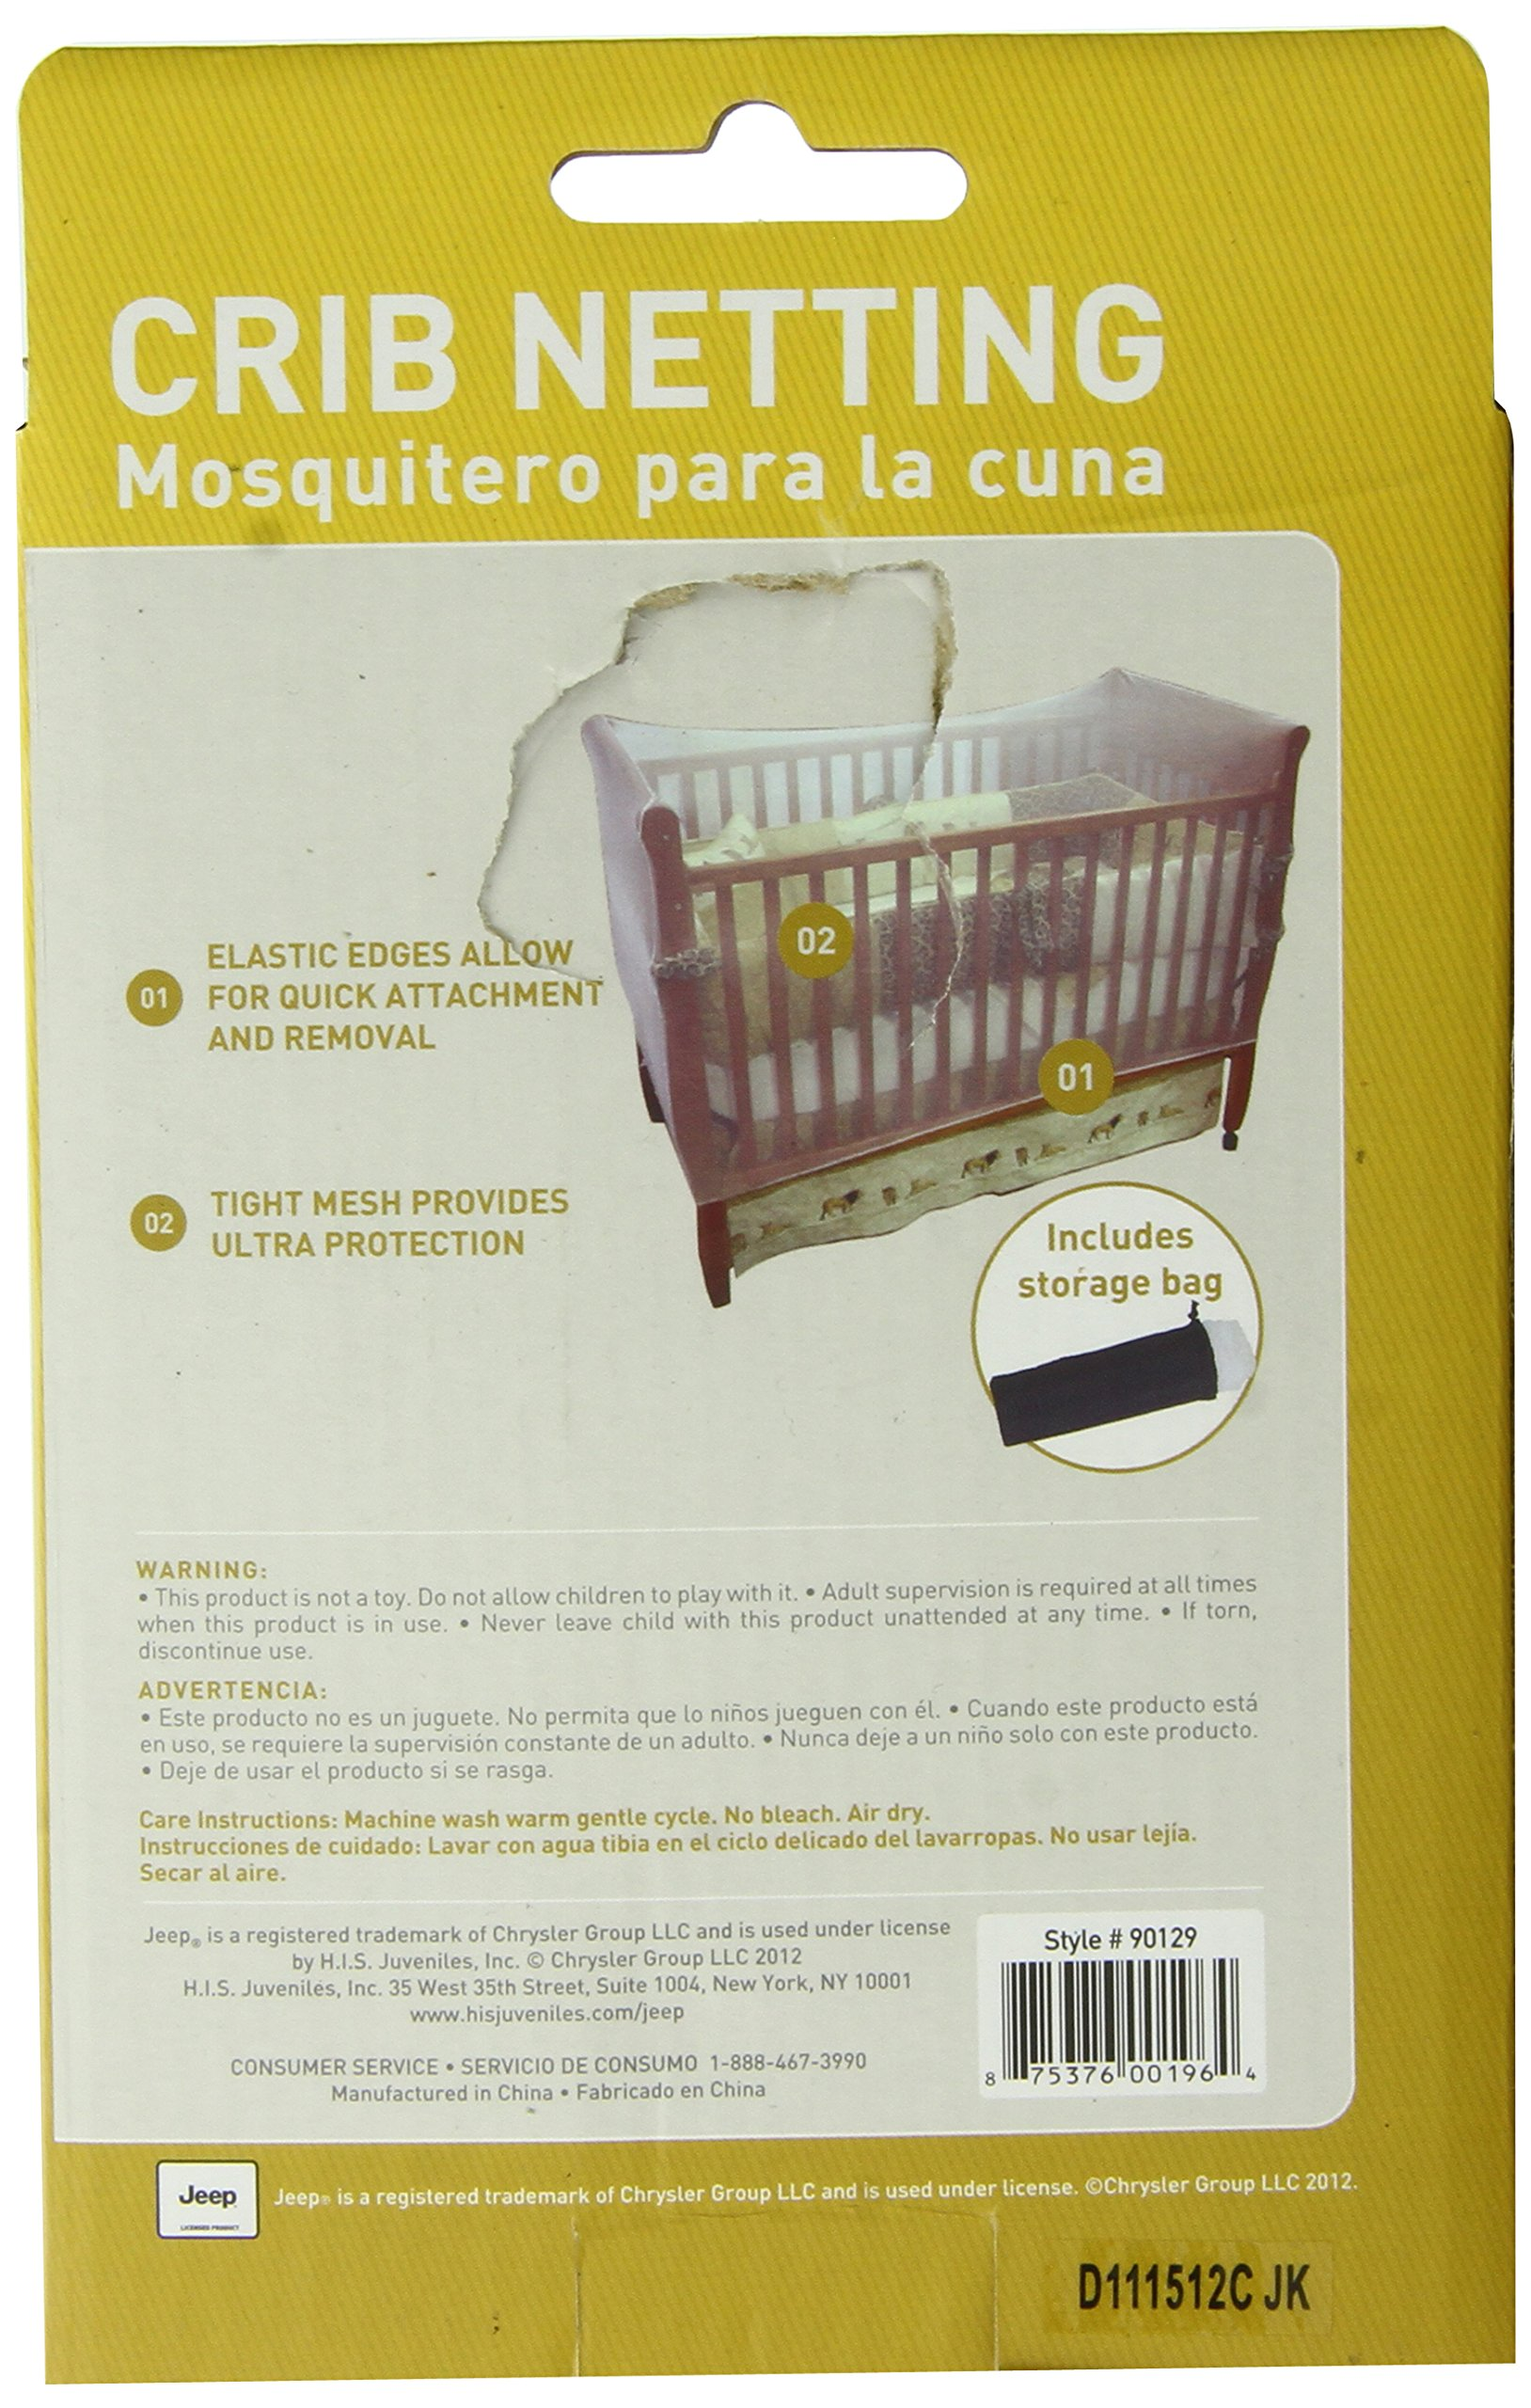 Jeep Crib Universal Size Crib Mosquito Net, White by Jeep (Image #2)